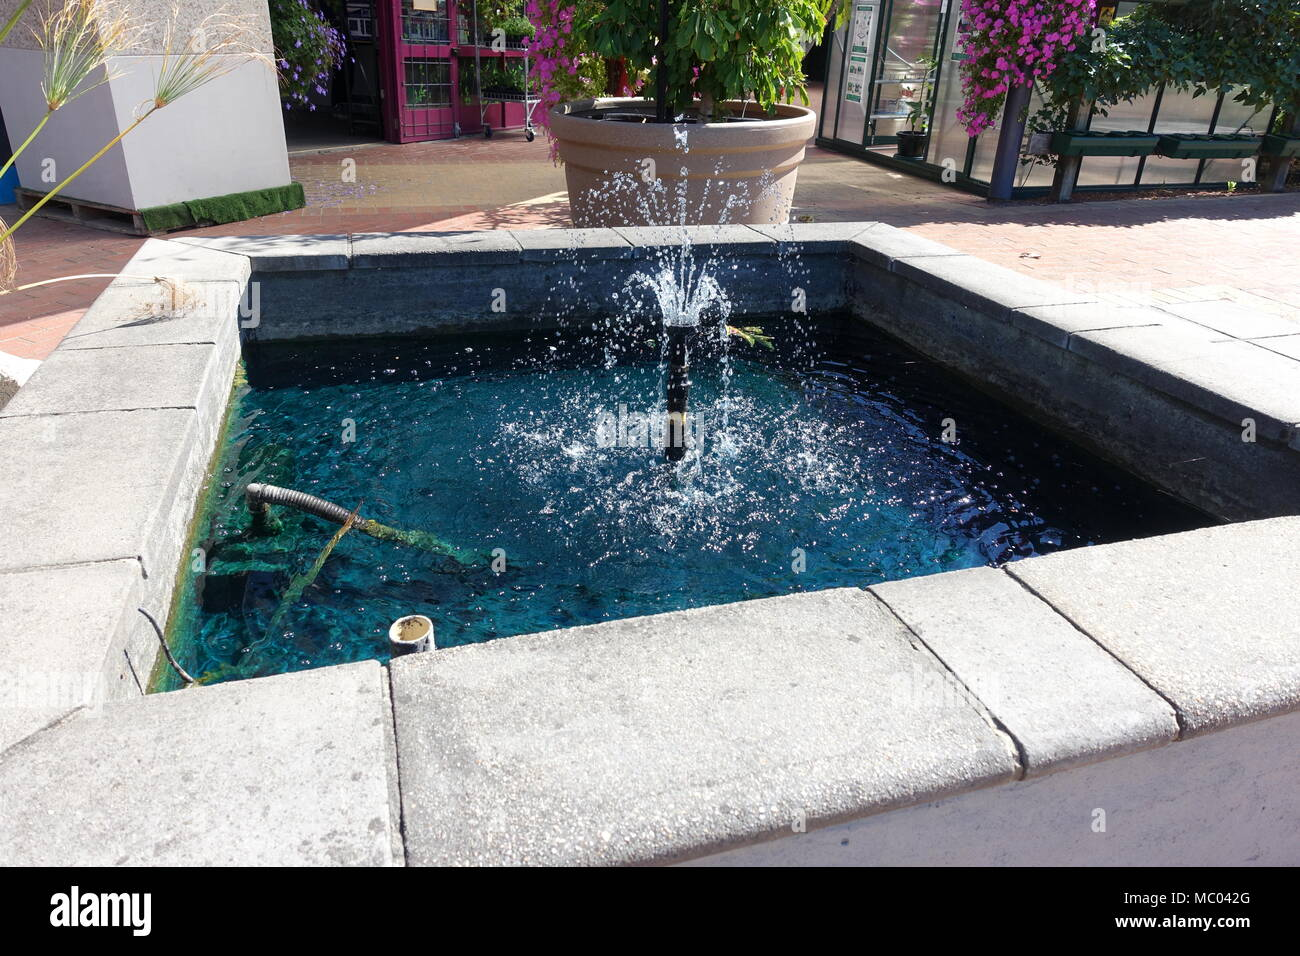 Man Made Water Fountains And Pool For Garden Decoration